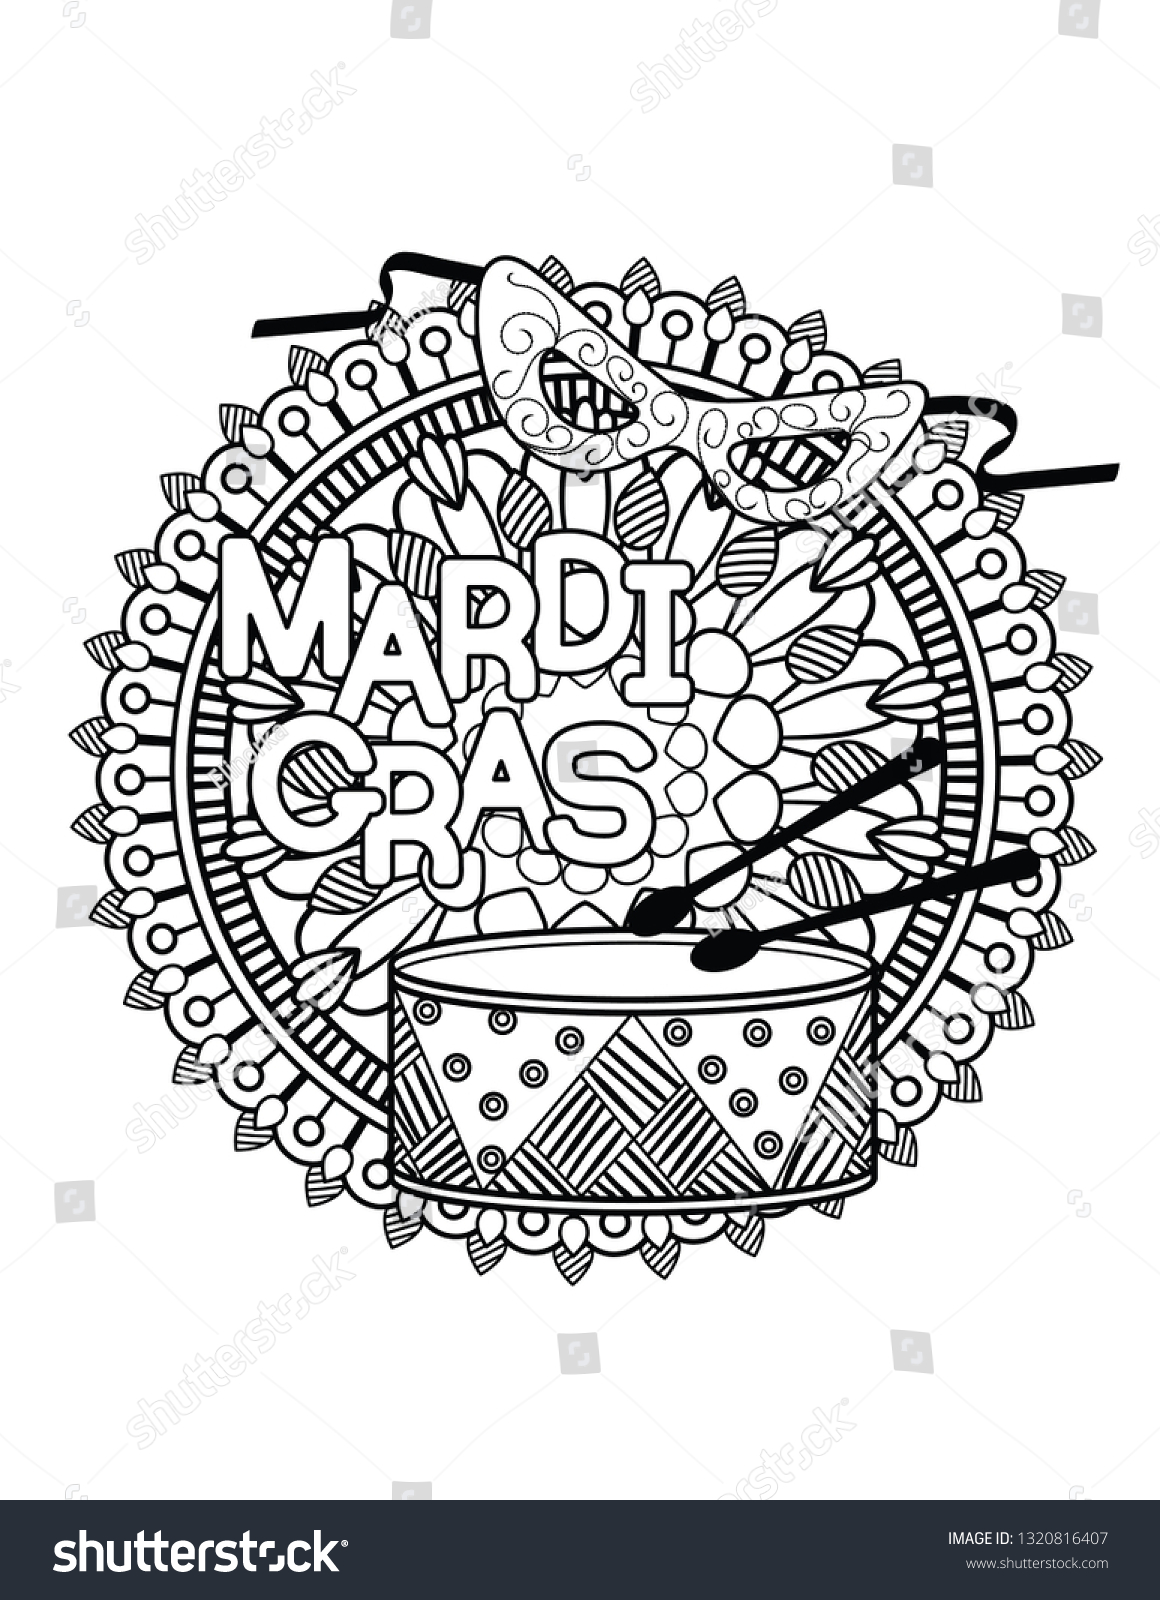 7 Top Places to Find Free Mardi Gras Coloring Pages | 1600x1160